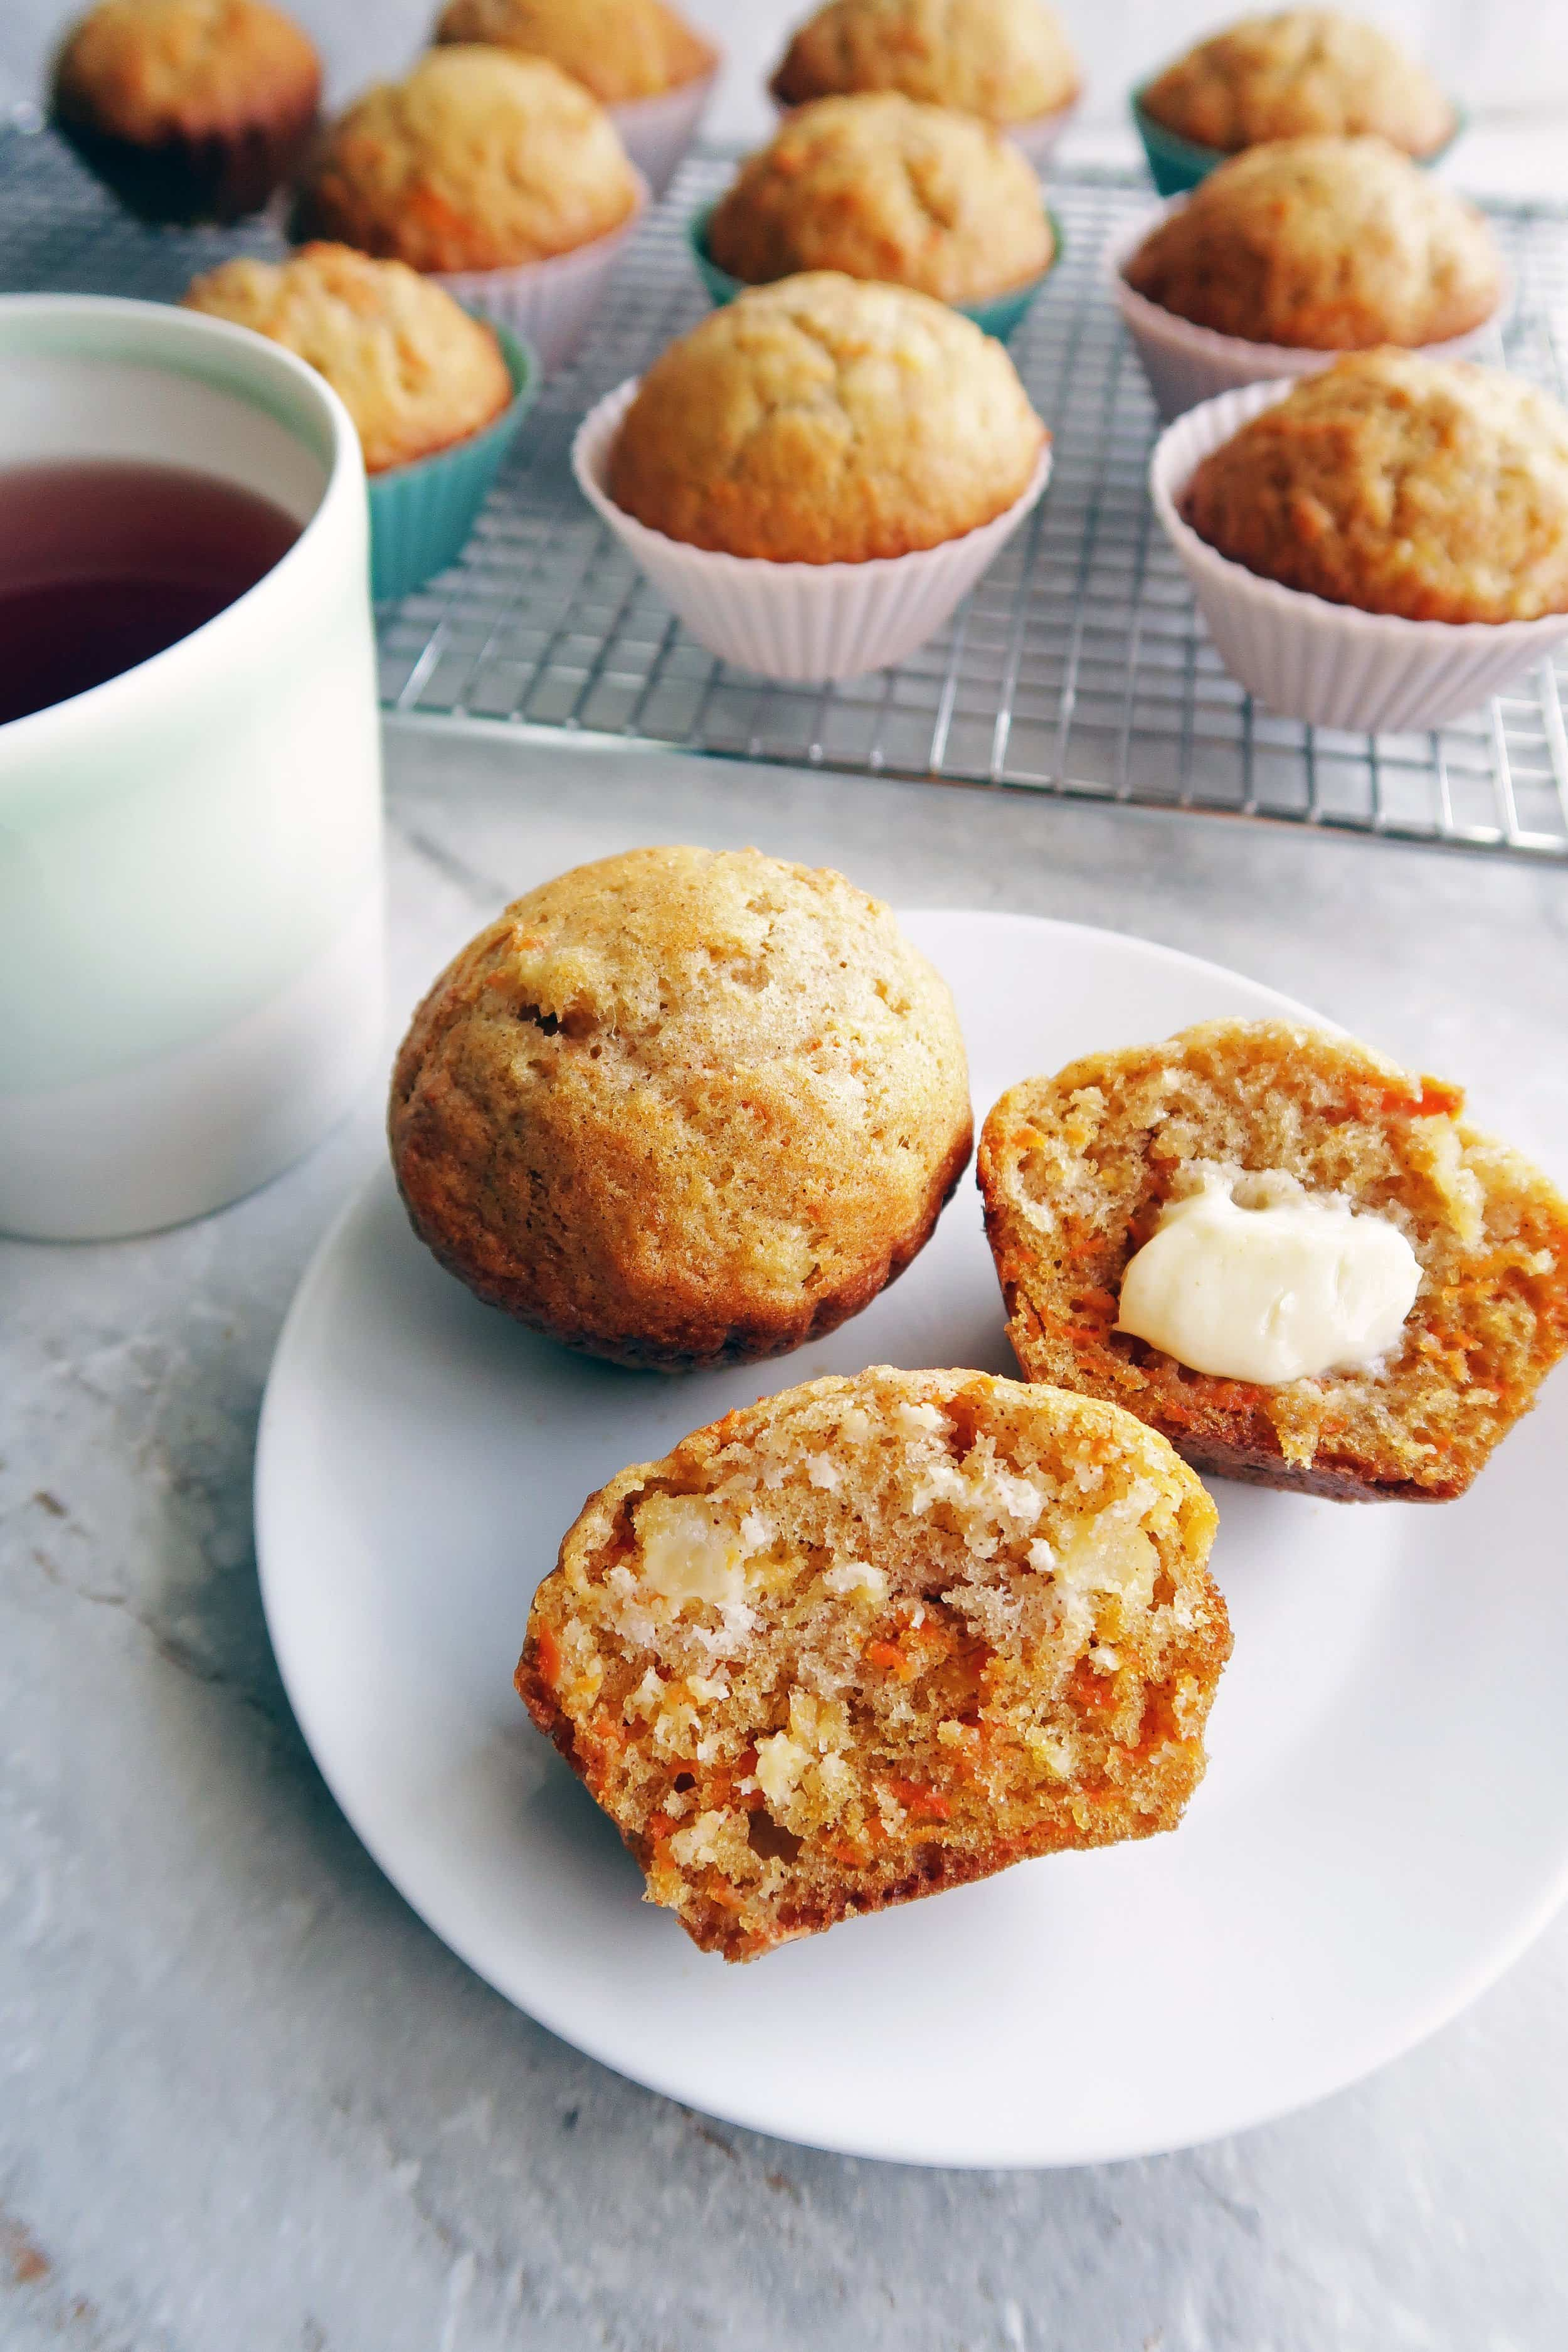 Two Carrot Pineapple Muffin, one cut in half with butter, on a white plate with more muffins on a cooling rack in the background.